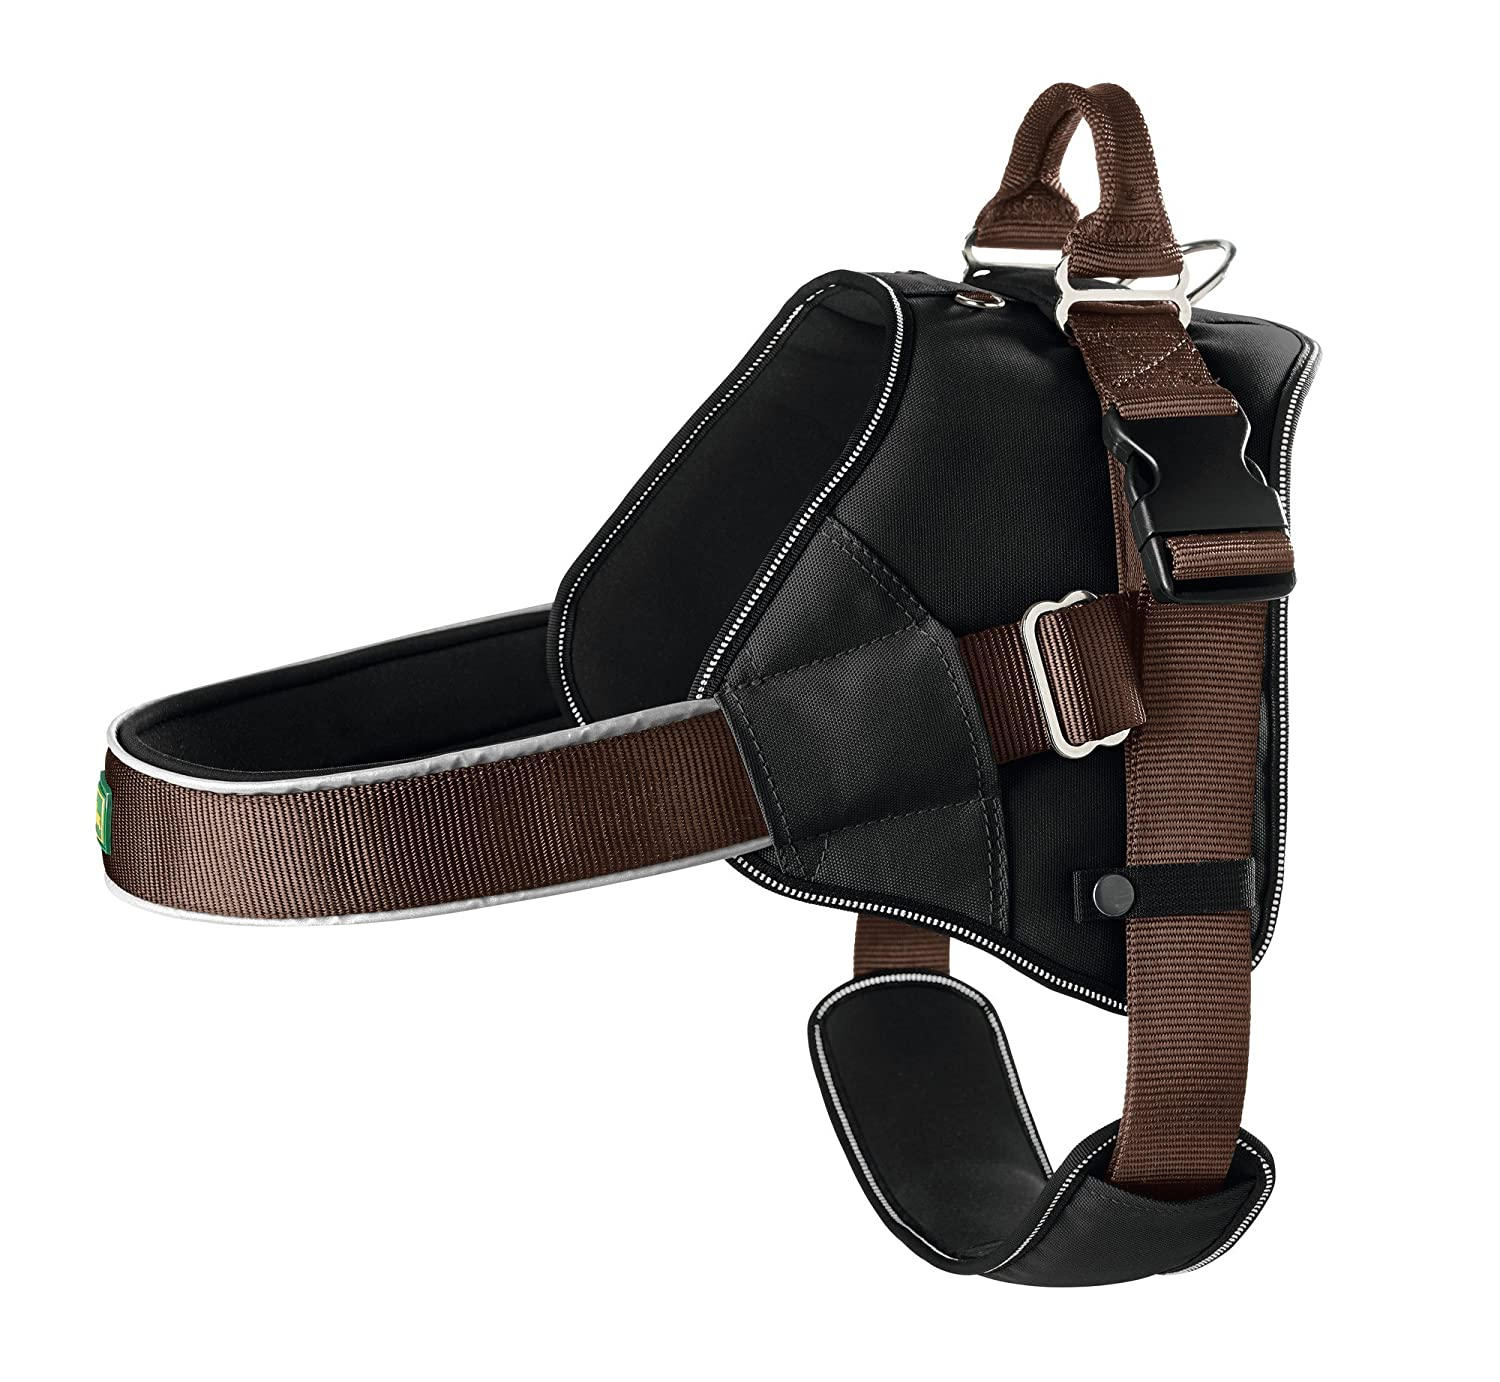 Brown L Brown L HUNTER Neopren Expert Nylon Harness, 64 x 100 cm, 38 mm, Large, Black Brown